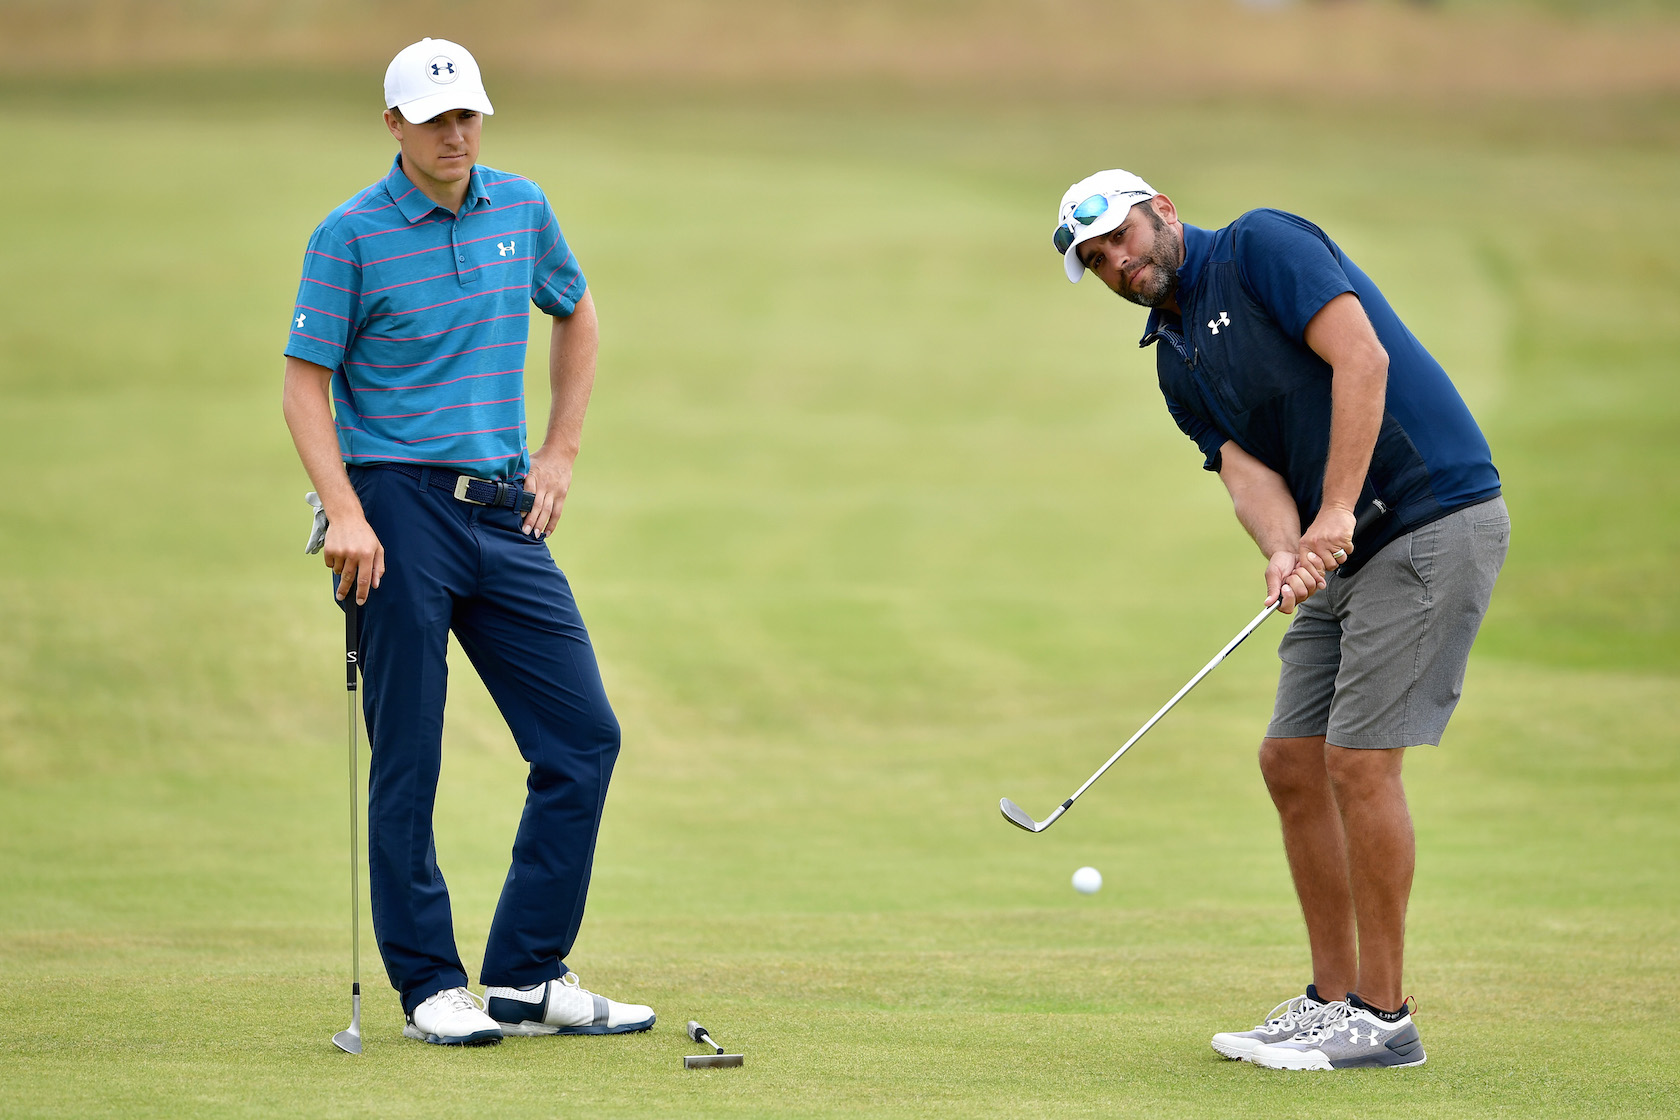 2017 Open Championship: Preview Day 3 - Michael Greller Chips with Jordan